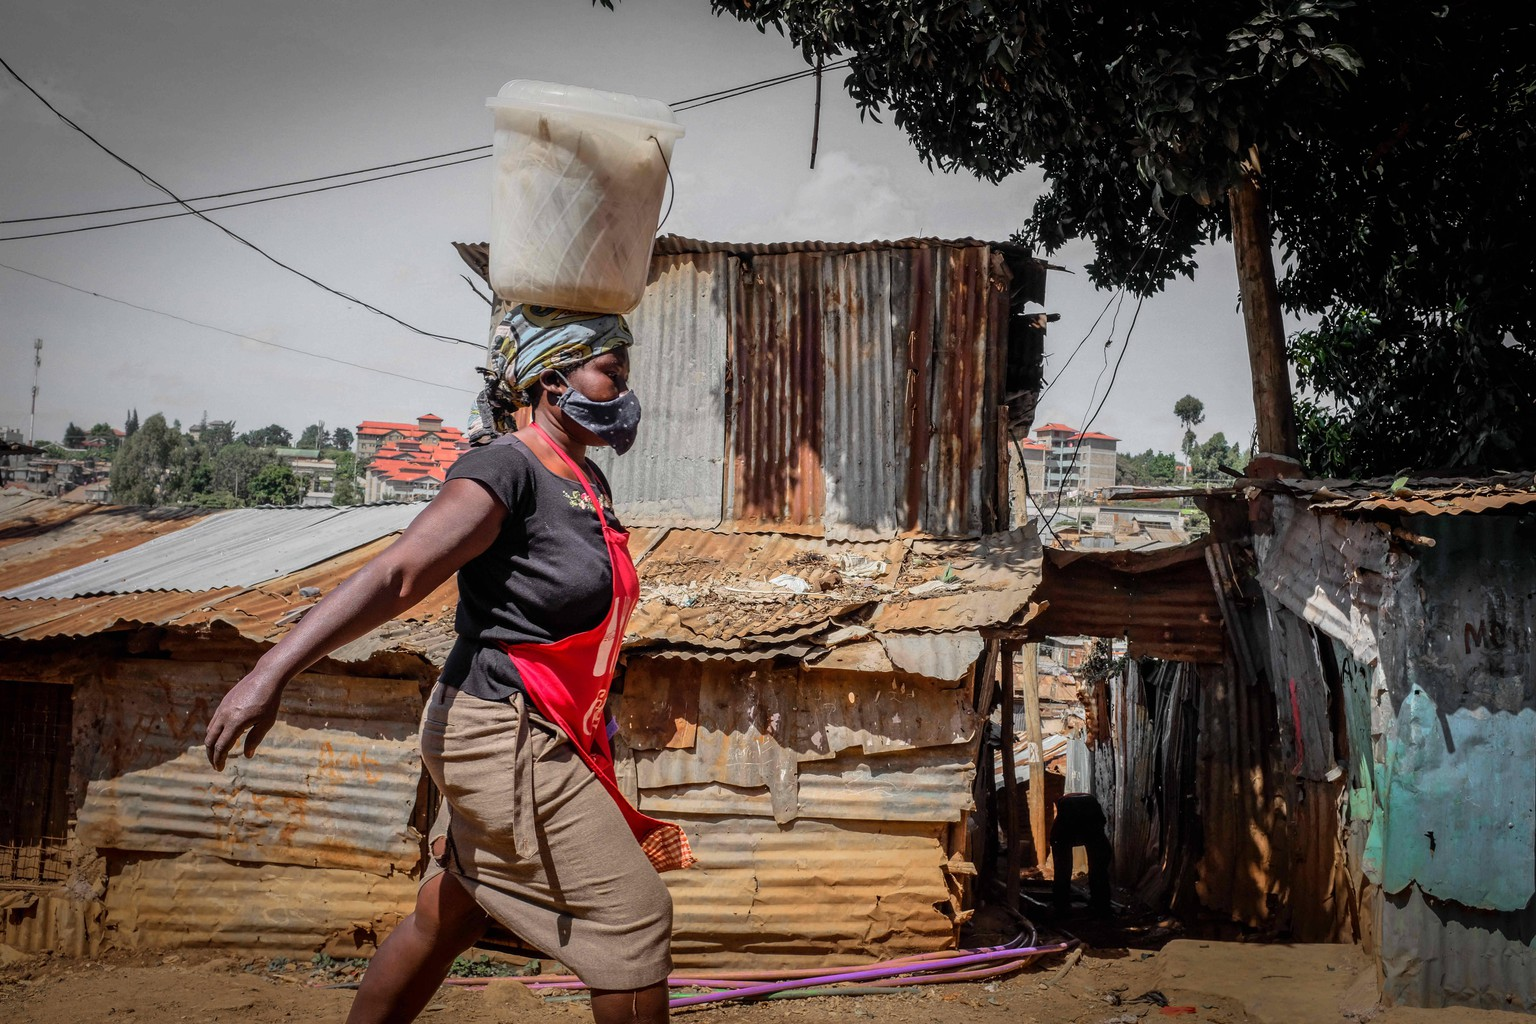 June 4, 2020, Nairobi, Kenya: A mobile business woman marching past the busy streets protected in her safety Face Mask. Nairobi Kenya - ZUMAd156 20200604zipd156002 Copyright: xDonwilsonxOdhiambox